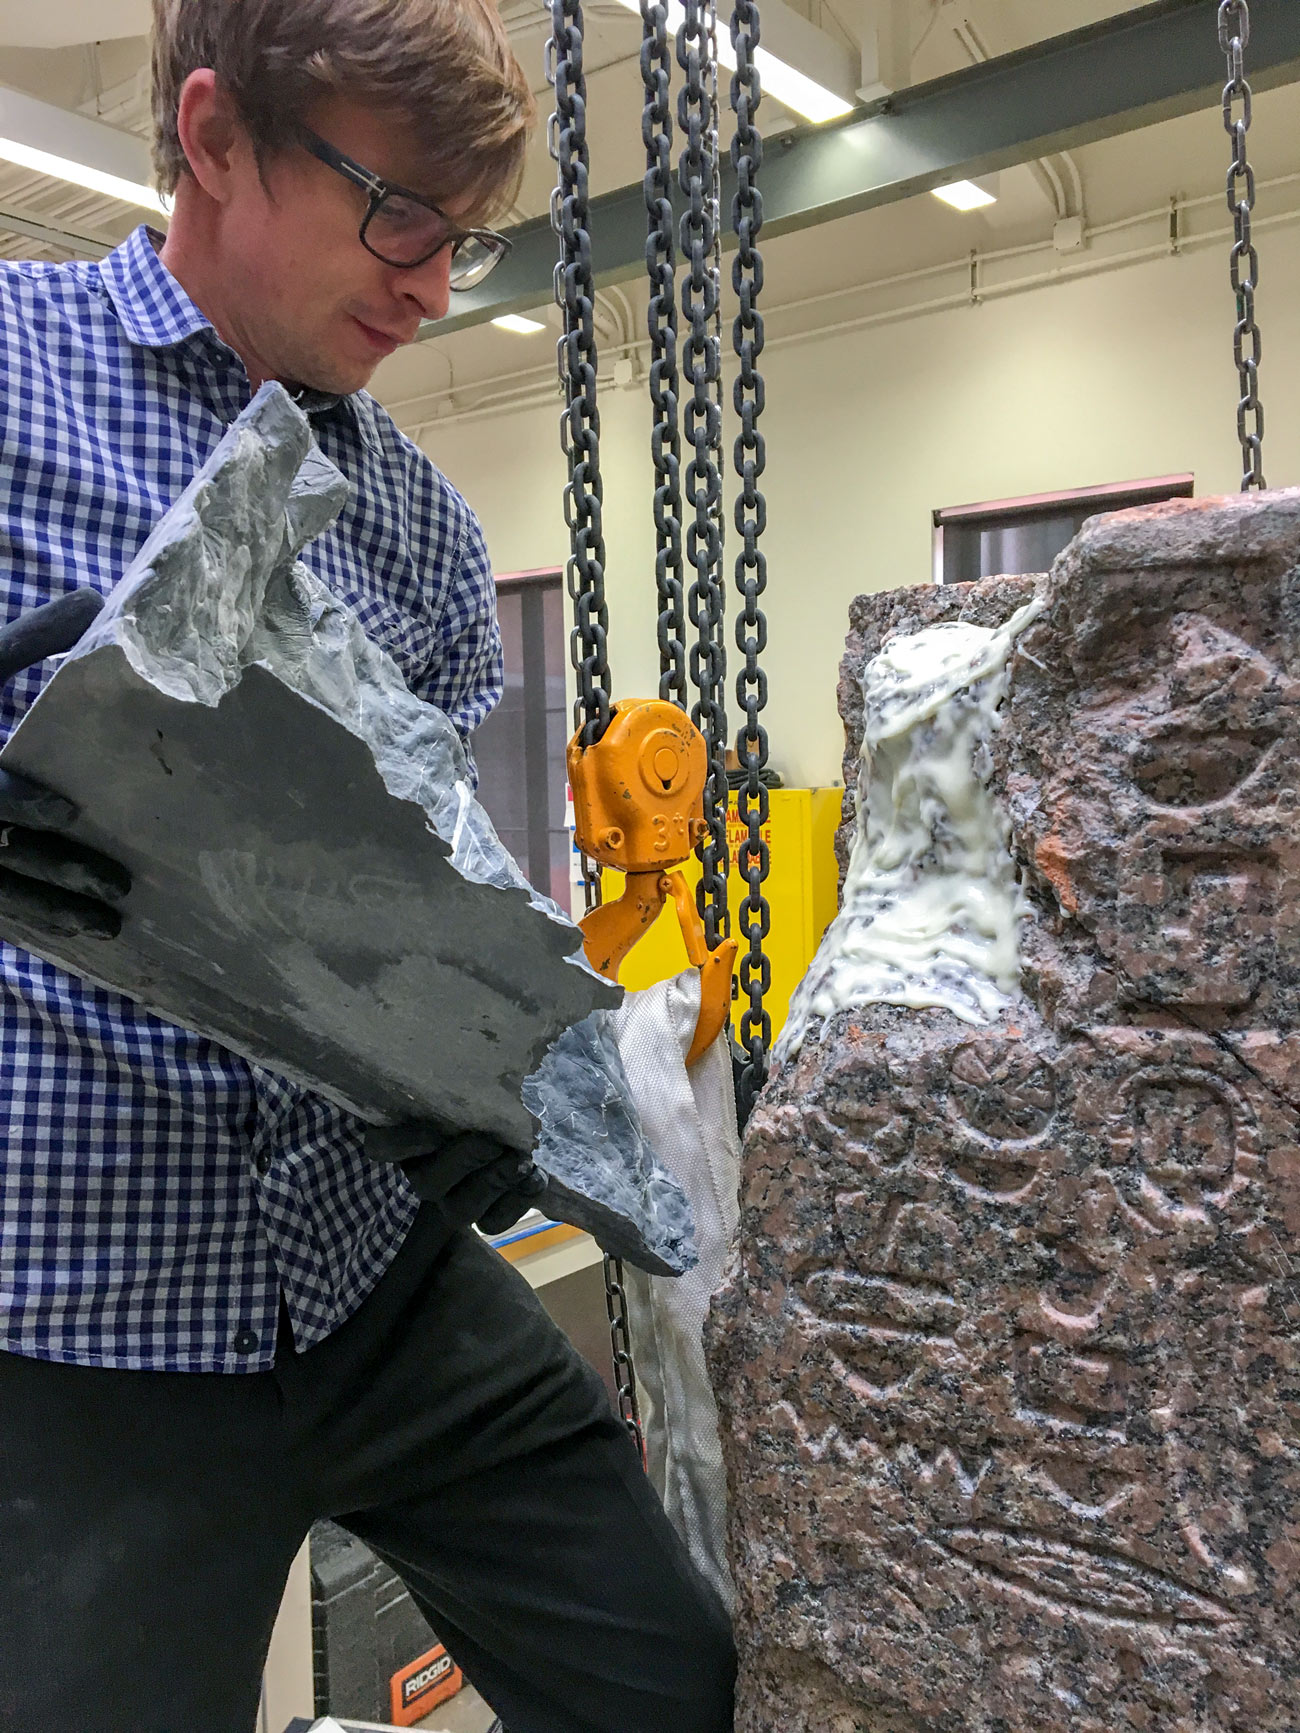 A man with gloves holds a large gray piece that appears to fit into a damaged section of a block of stone carved with hieroglyphics.